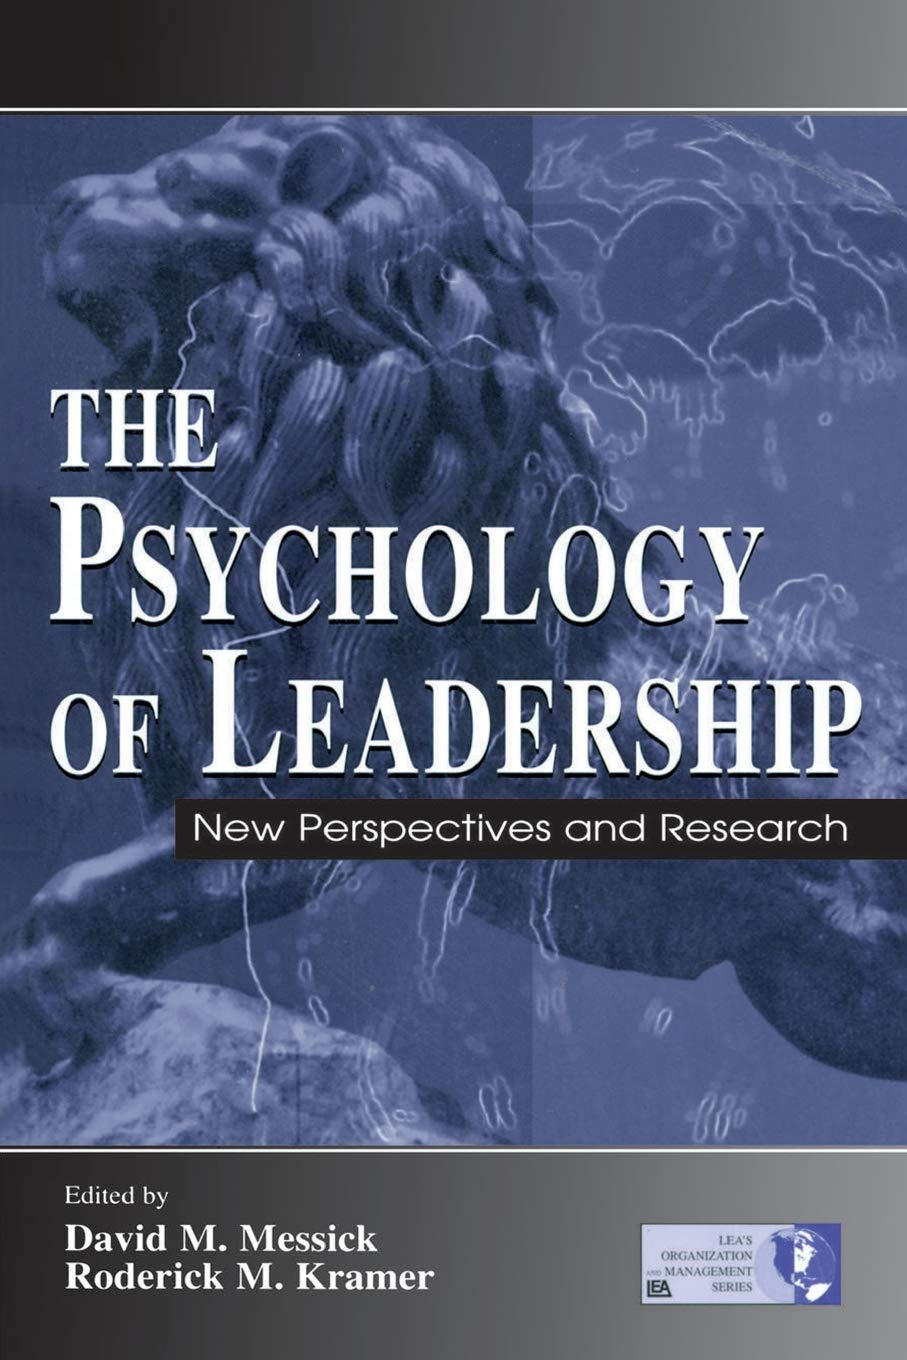 Download The Psychology of Leadership: New Perspectives and Research (Organization and Management Series) PDF